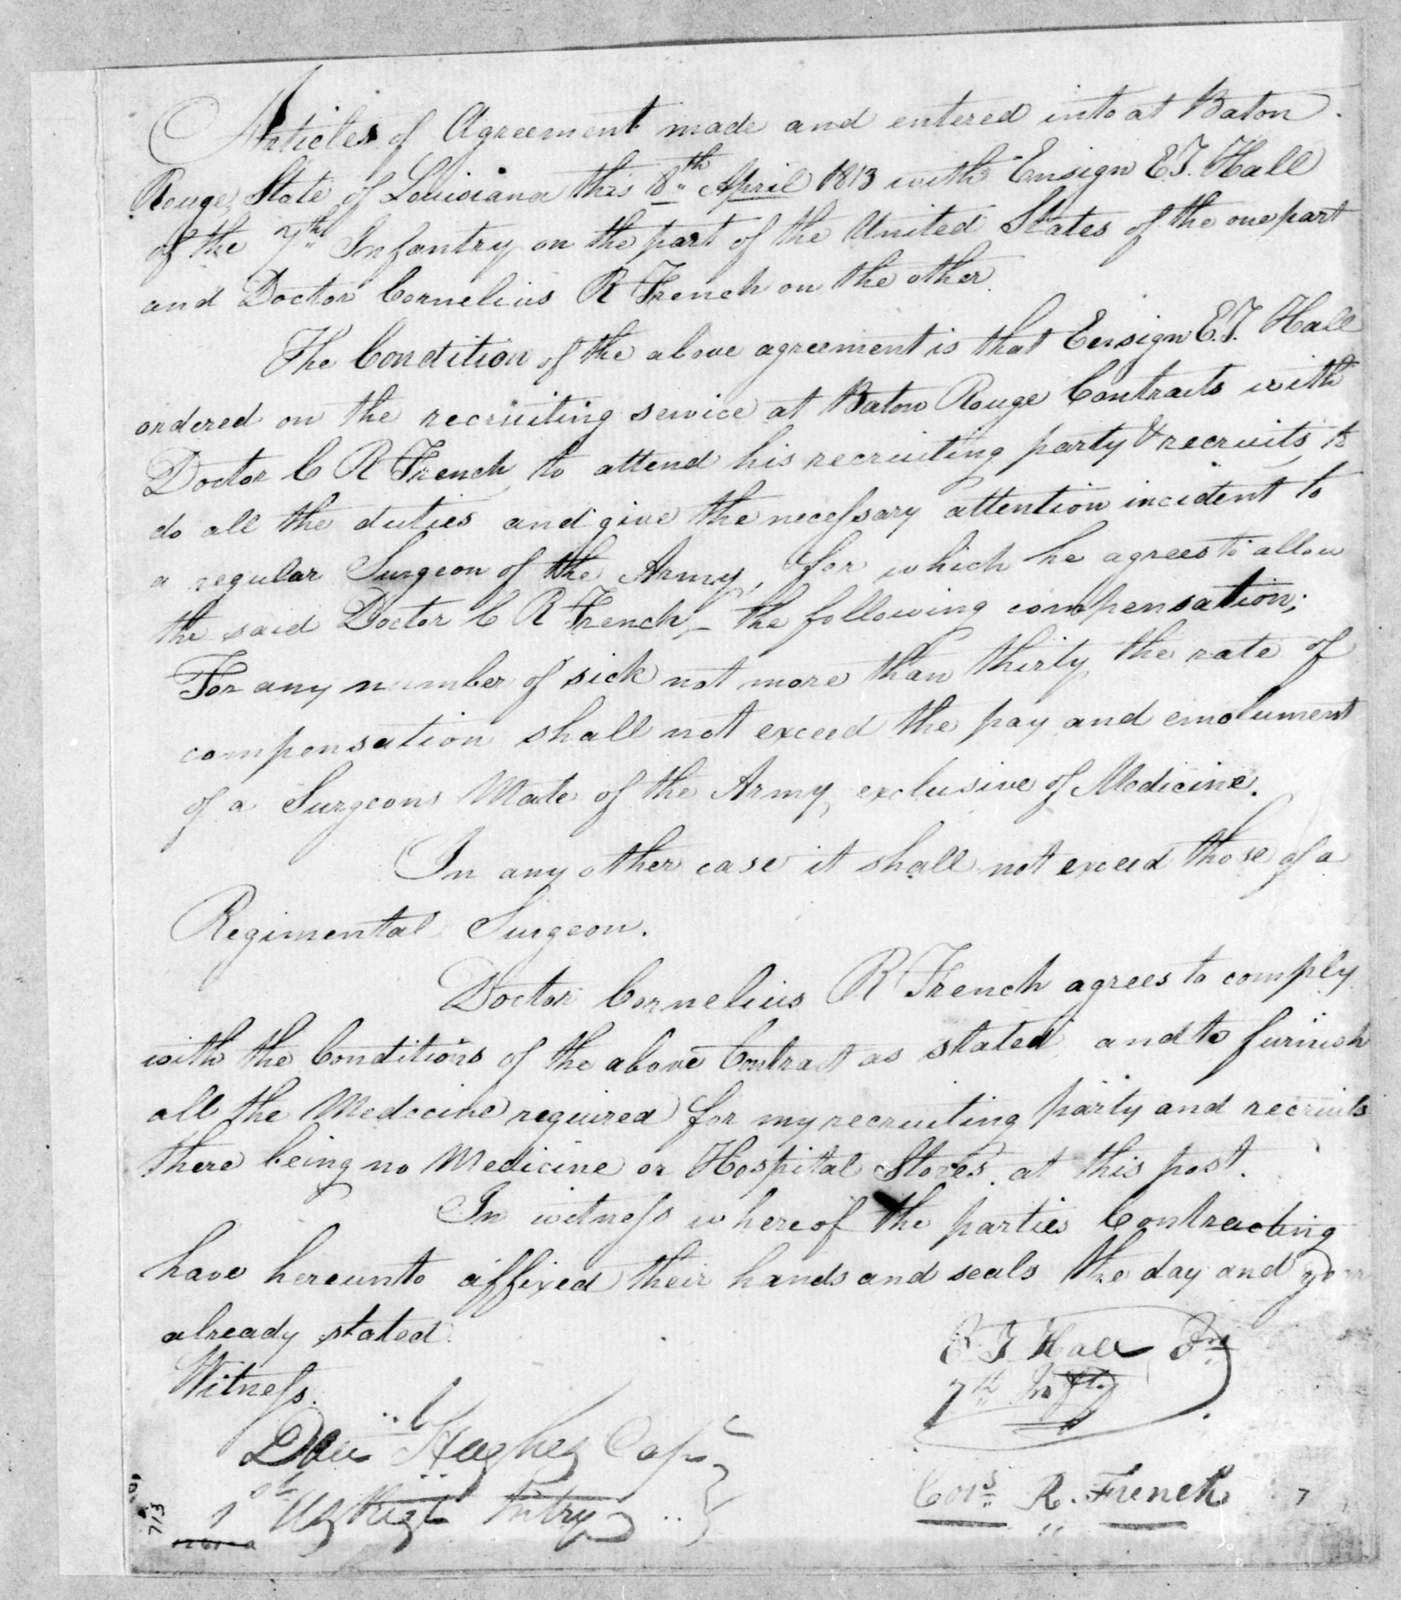 C. T. Hall to C. R. French, April 8, 1813